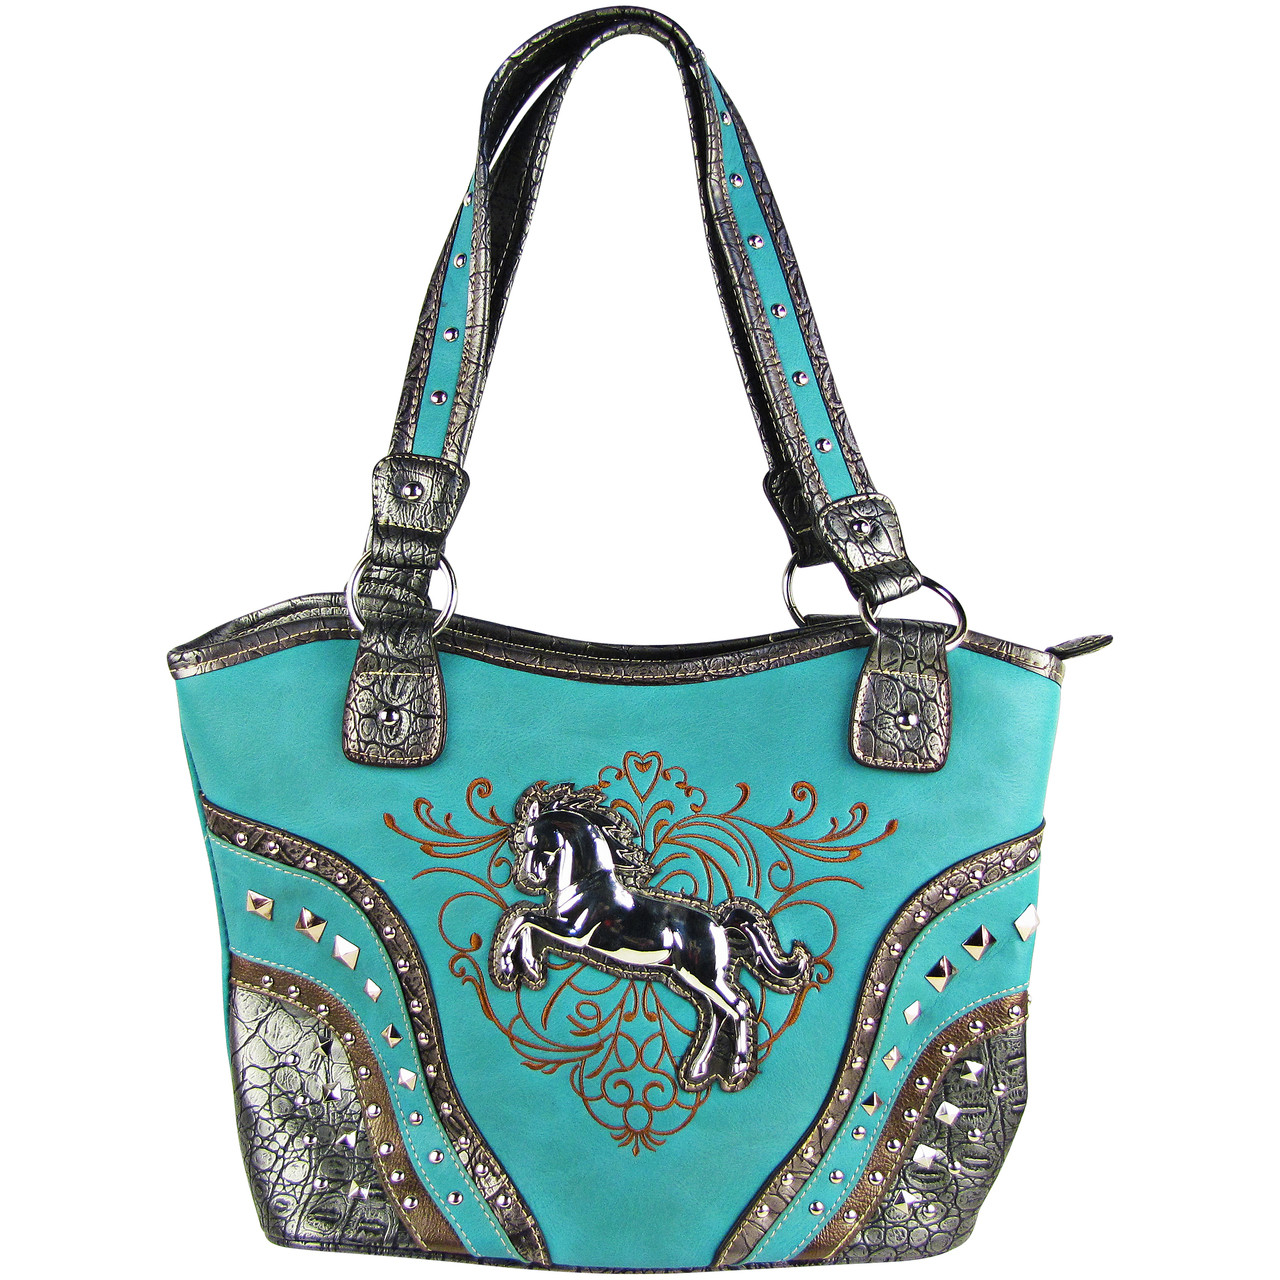 TURQUOISE METAL HORSE WITH STITCHED DESIGN LOOK SHOULDER HANDBAG HB1-W22HSTRQ